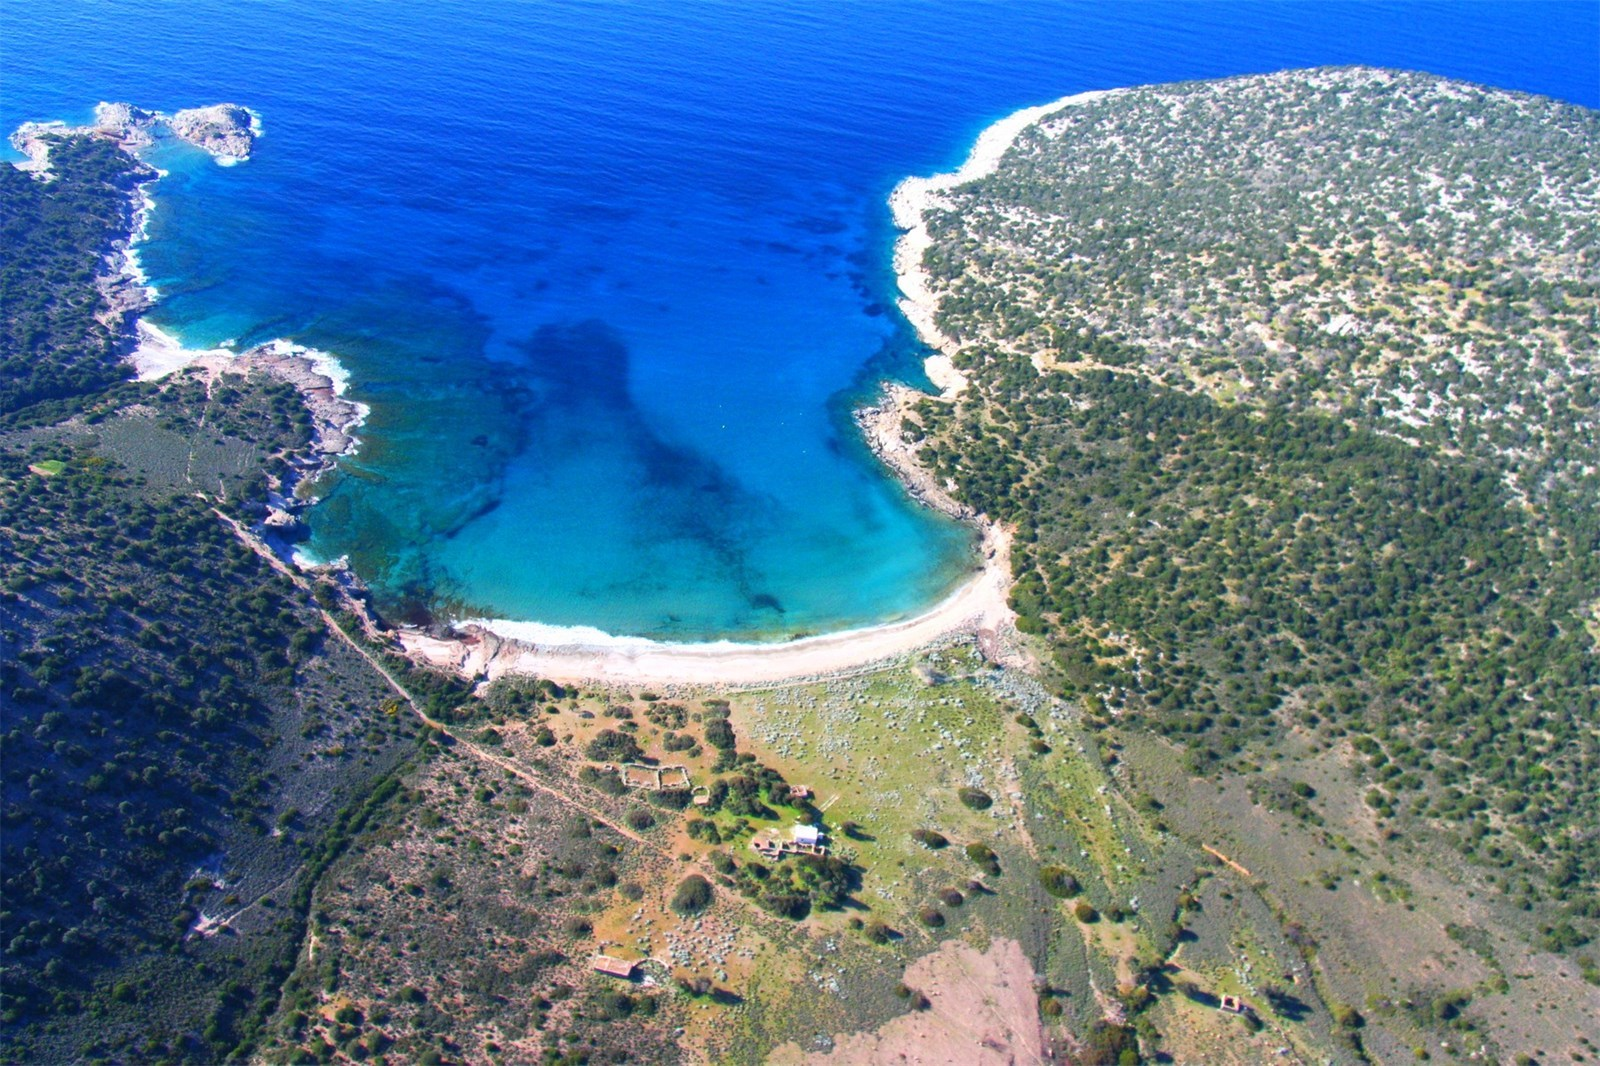 Northern Aegean Island - Greece, Europe - Private Islands for Sale